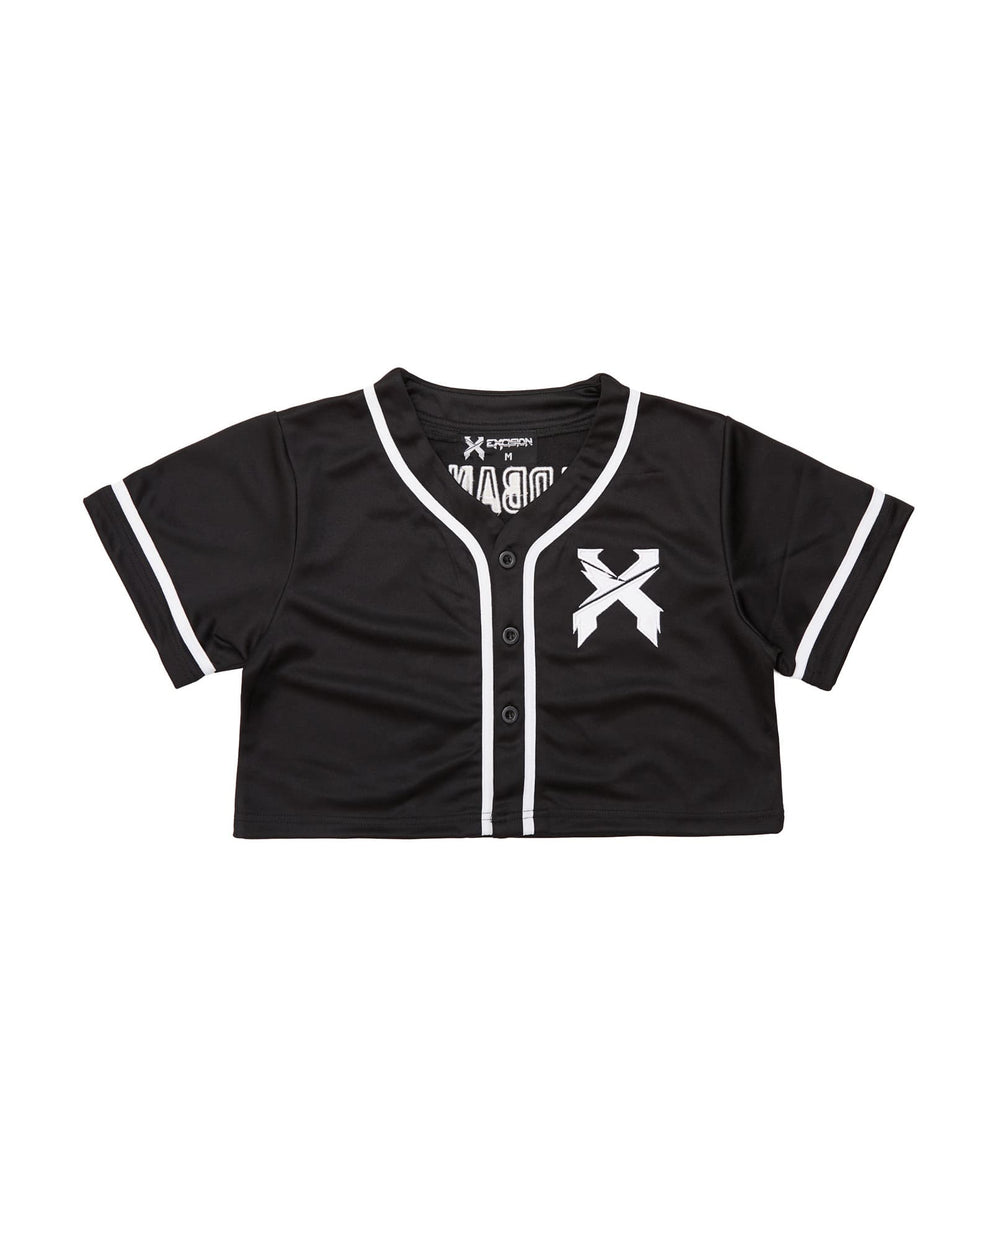 Excision Women's Crop Top Baseball Jersey - Black/White